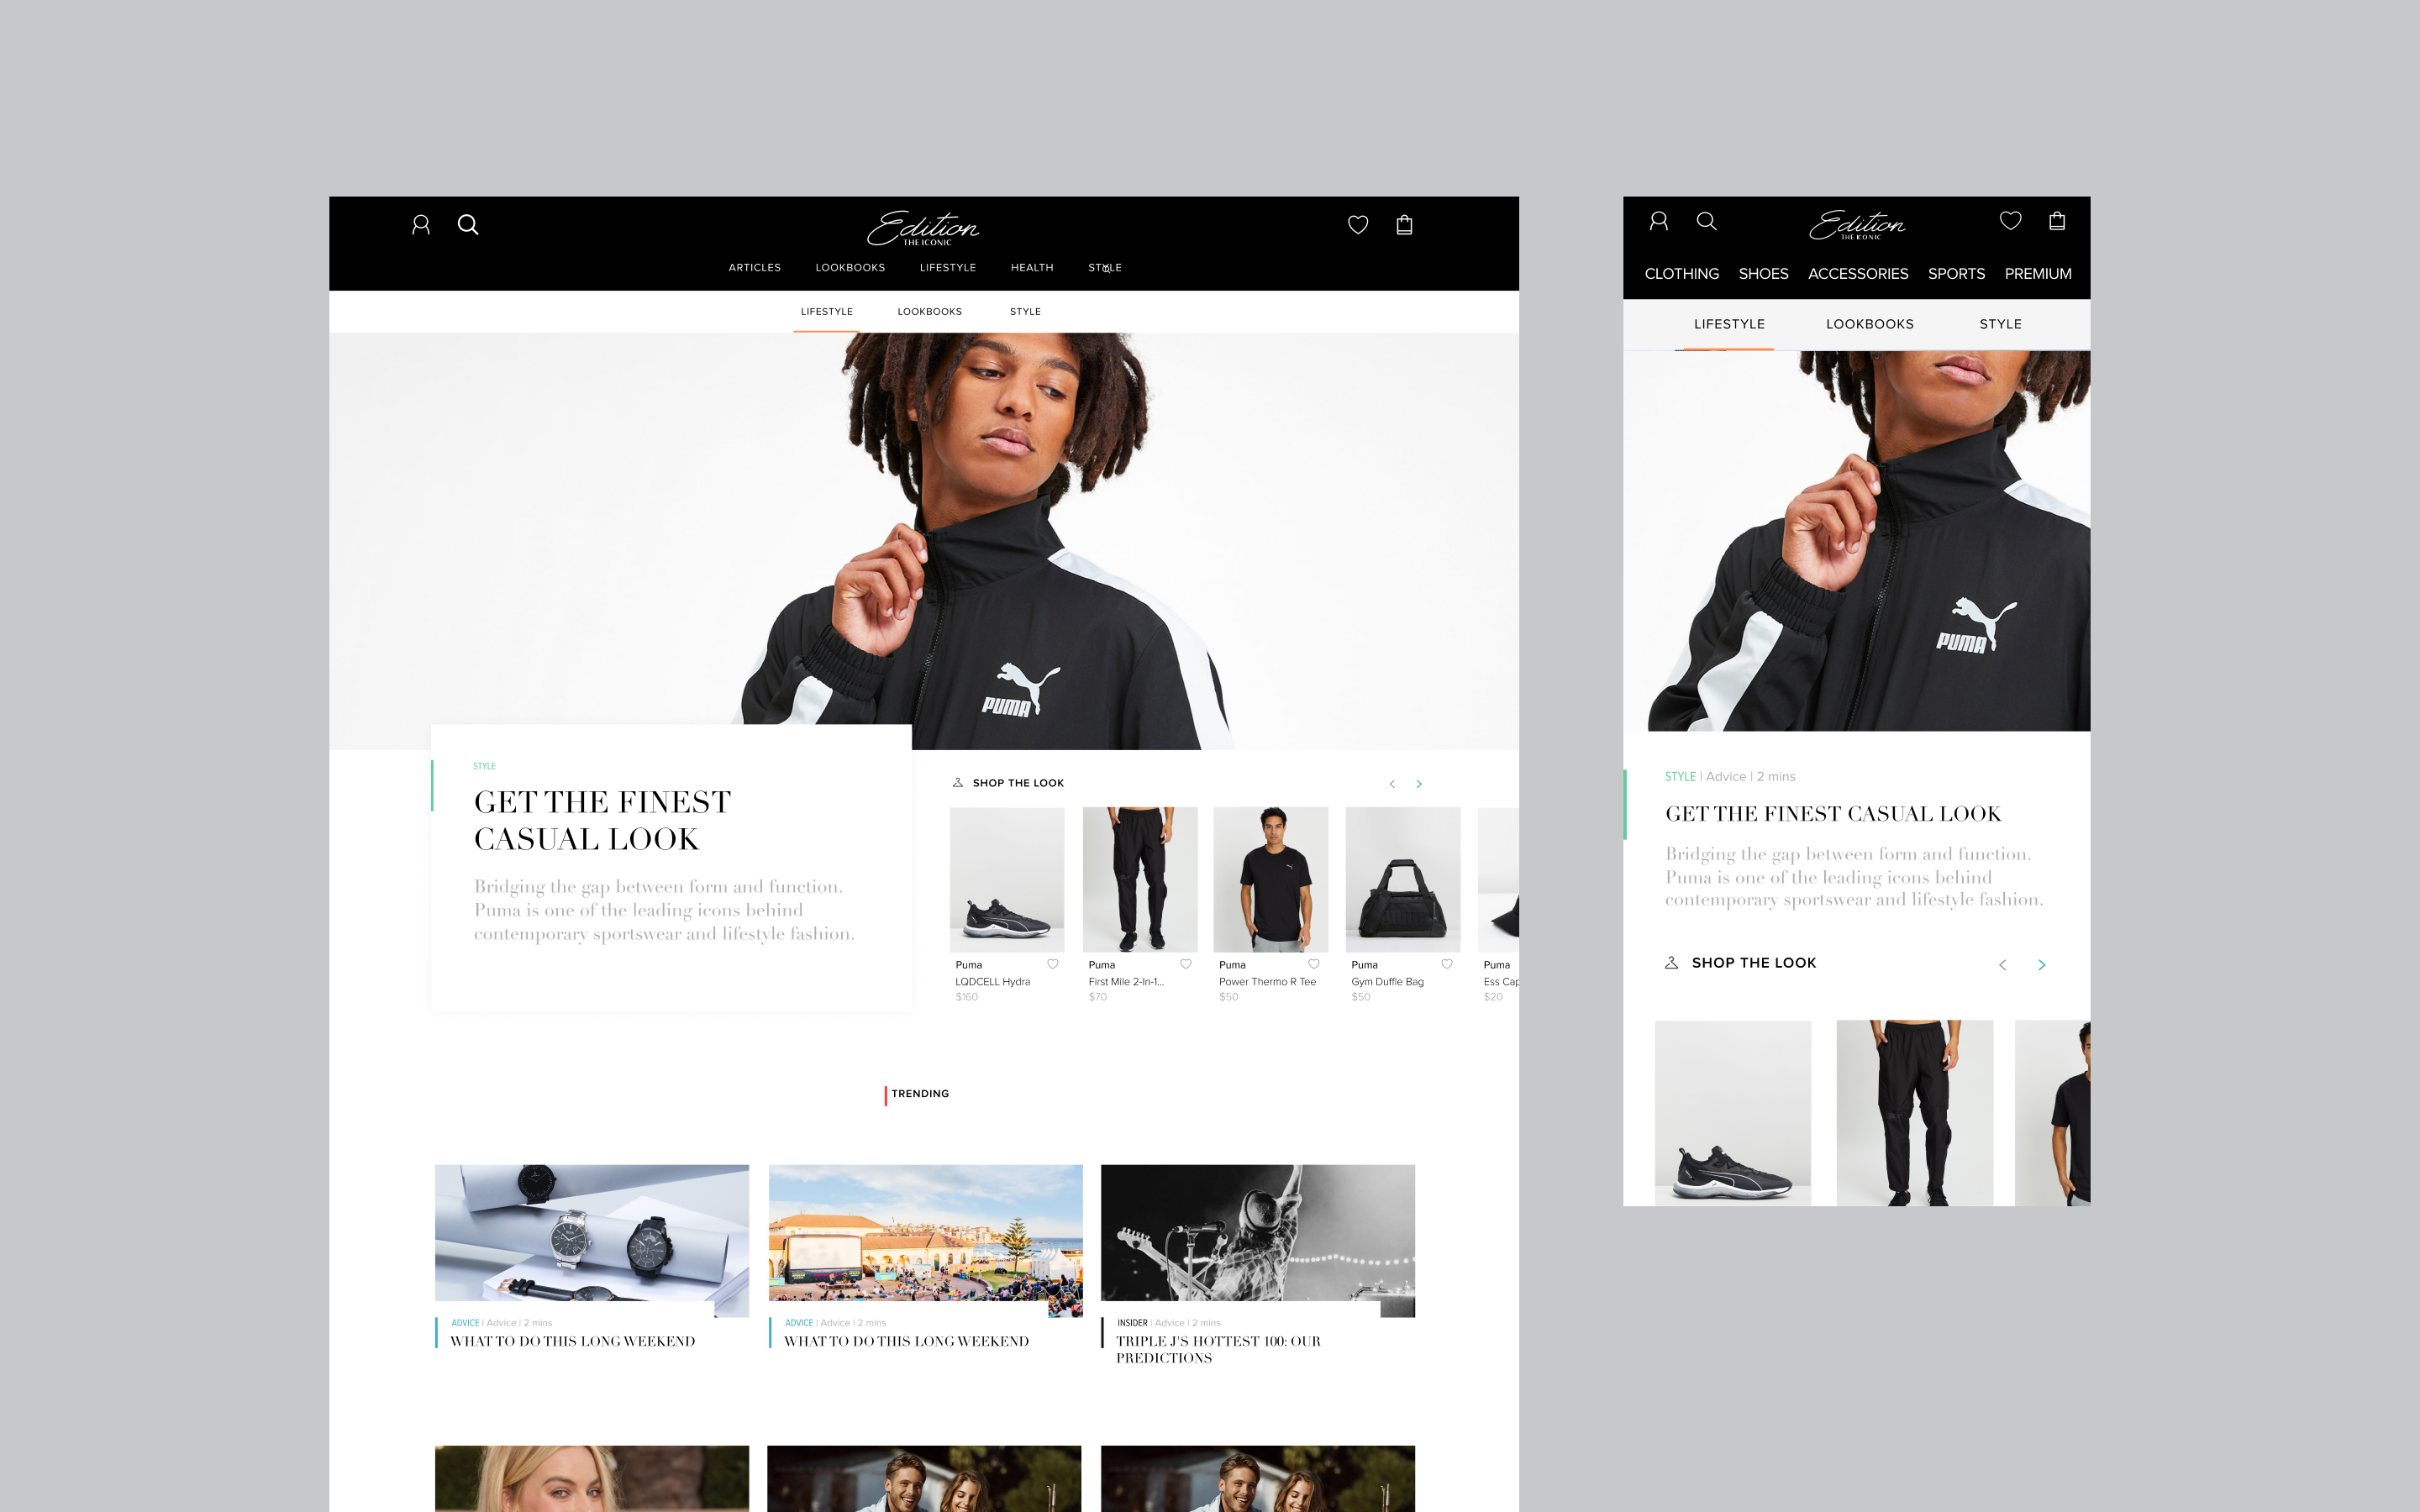 Edition by THE ICONIC's new homepage design, showcasing editorial and retail items